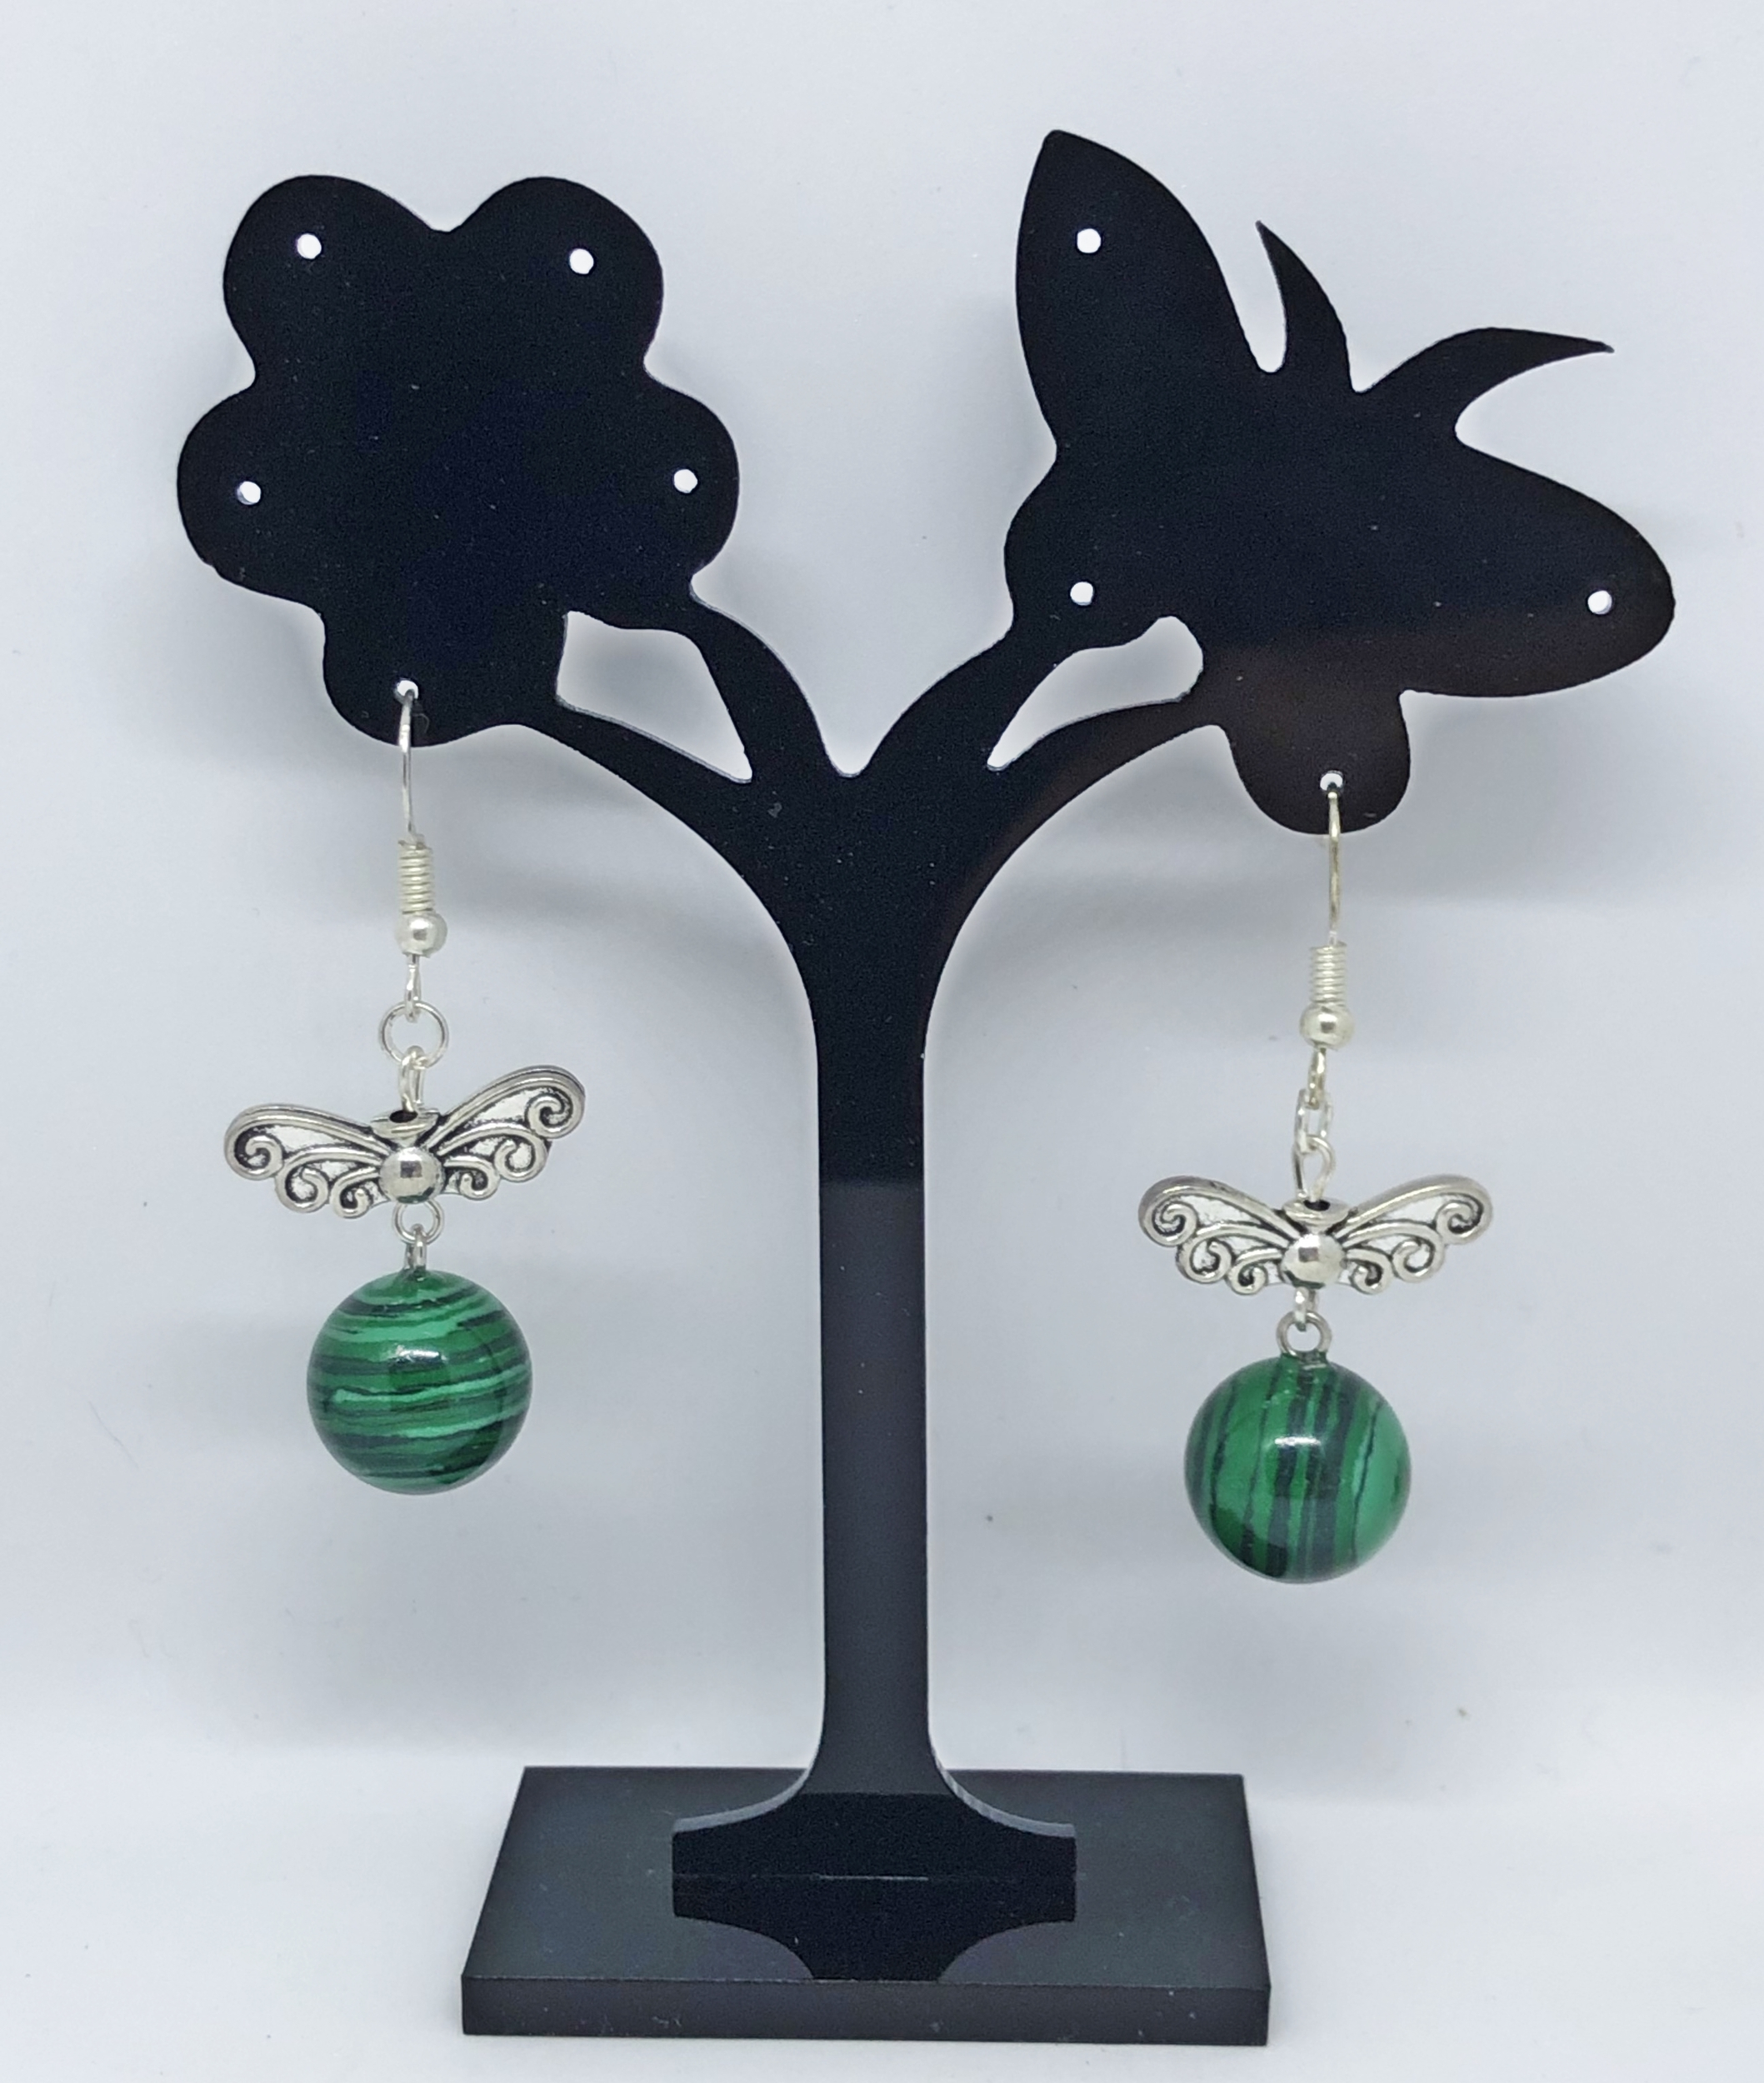 Boucles d\'oreilles bille malachite et papillon argent tibétain crochets - Angel shop